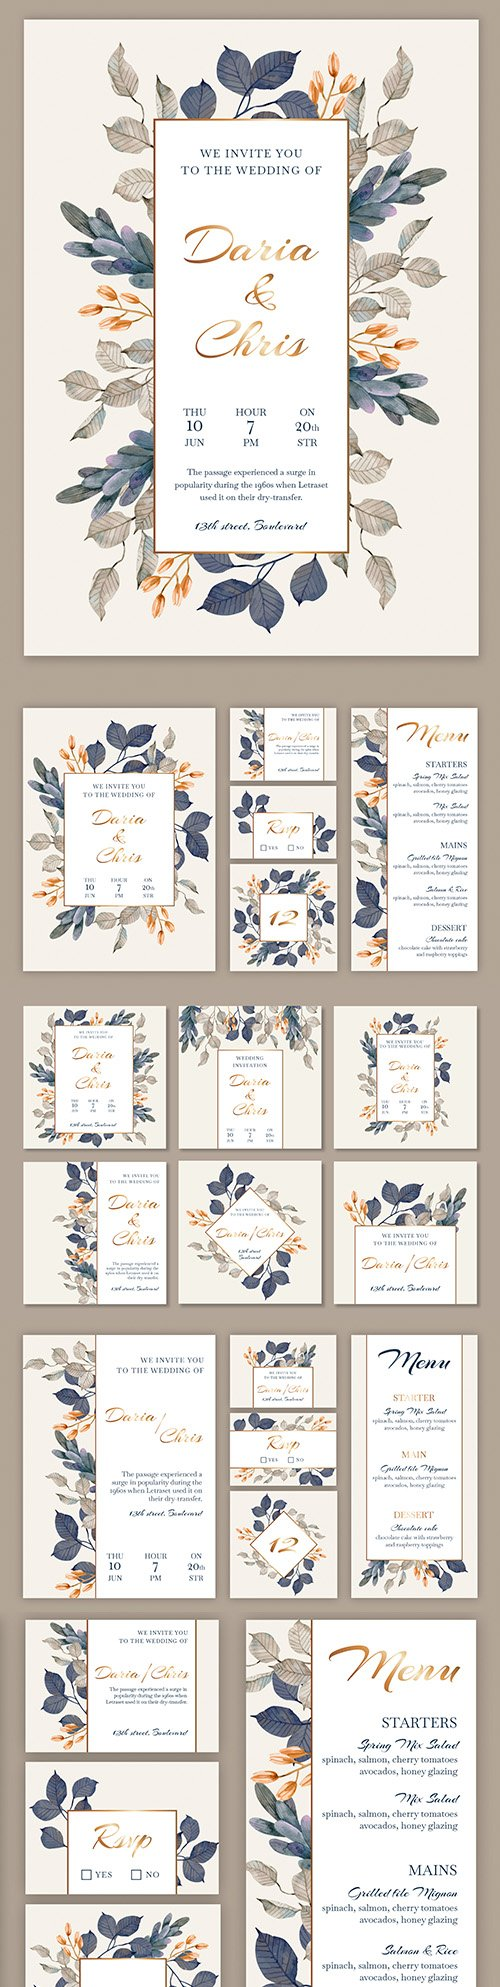 Floral wedding stationery and instagram post design template